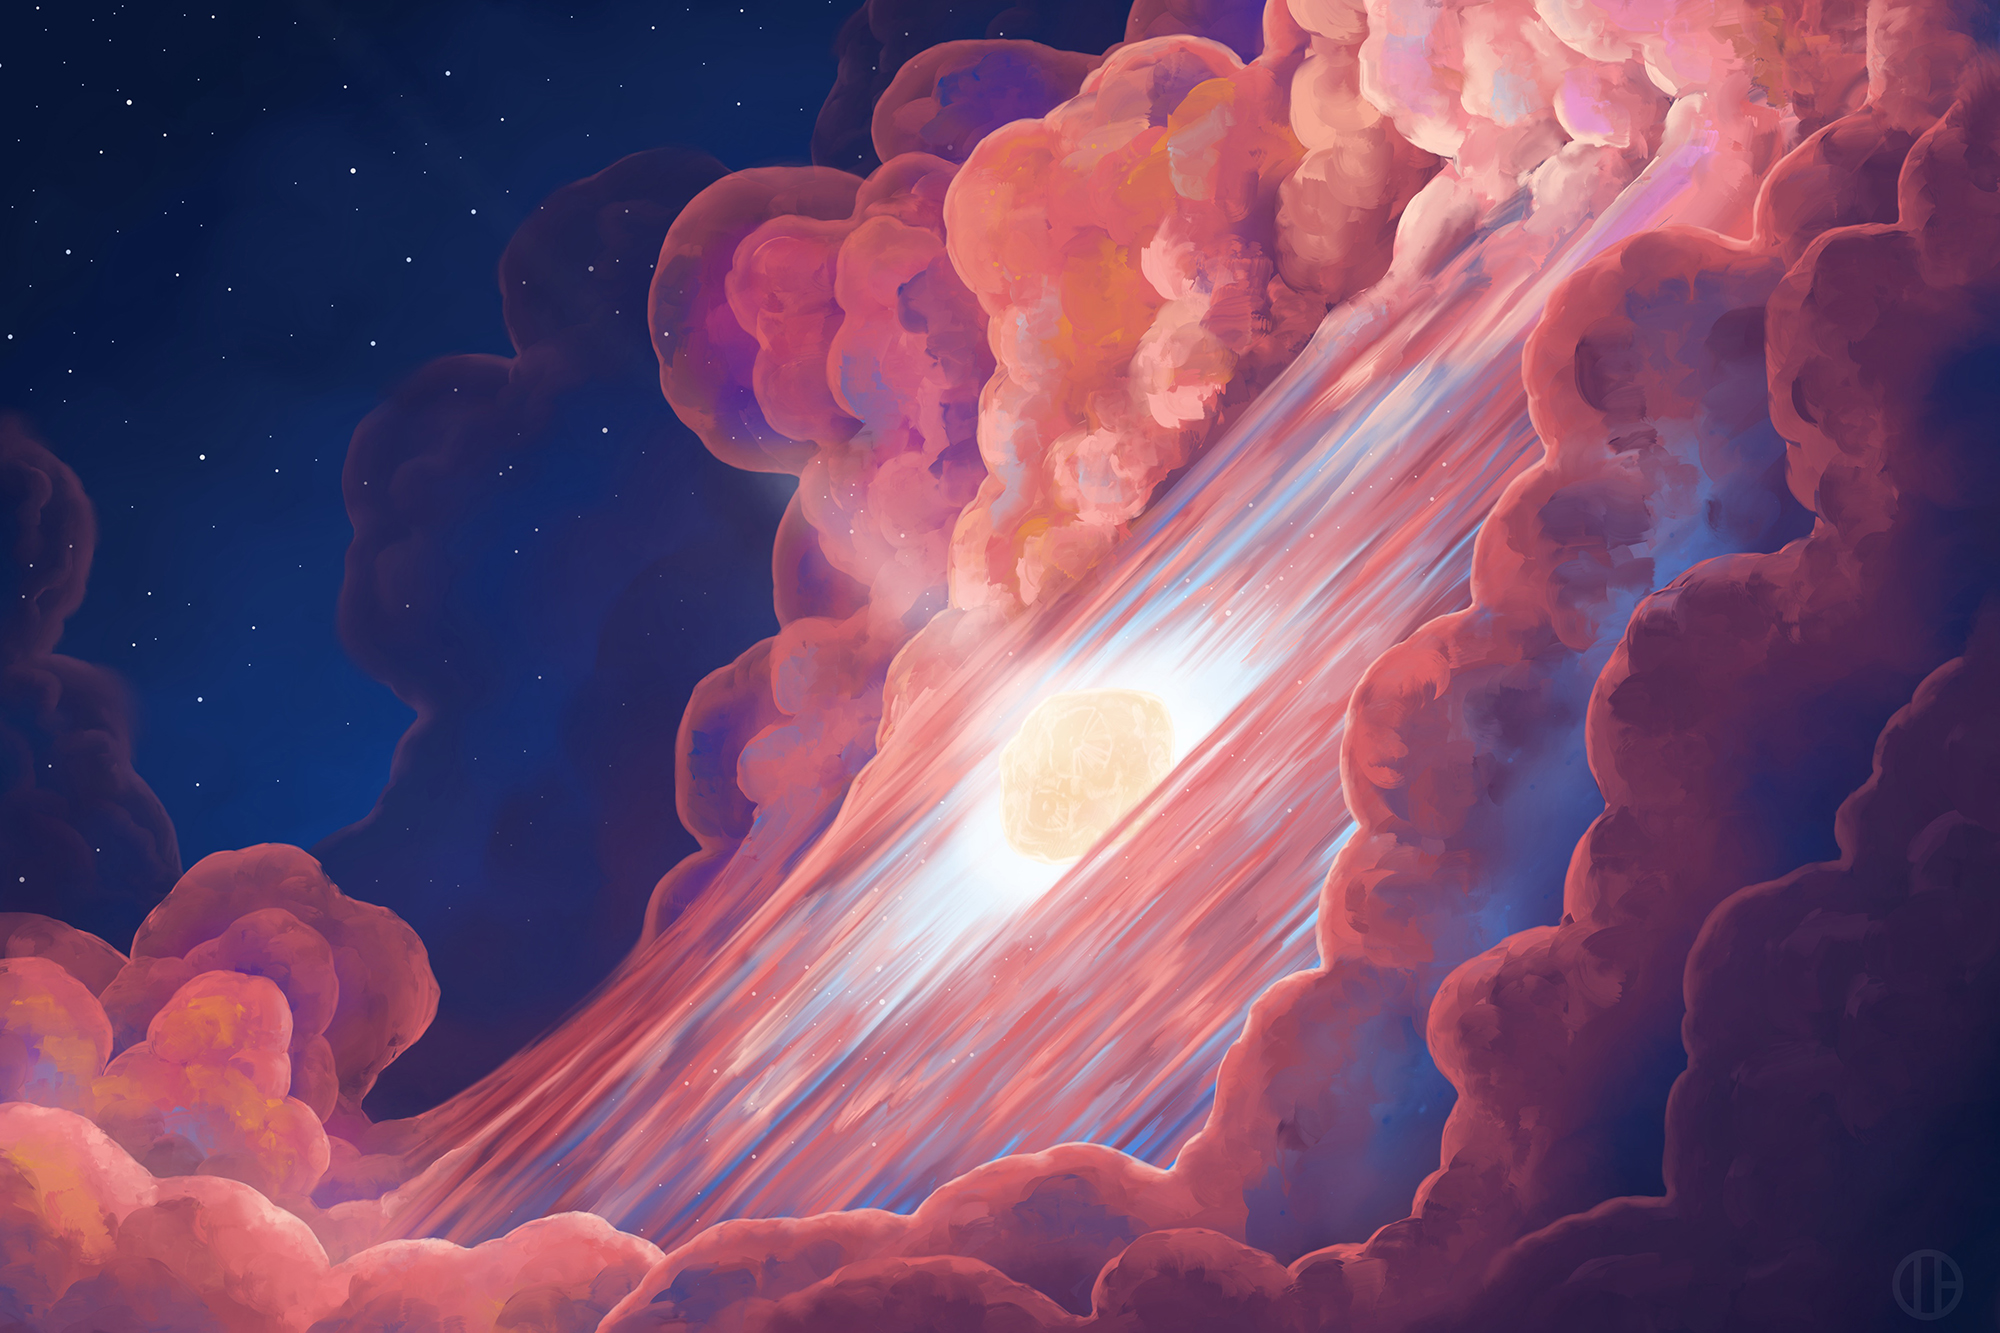 A colorful illustration of the Psyche asteroid.